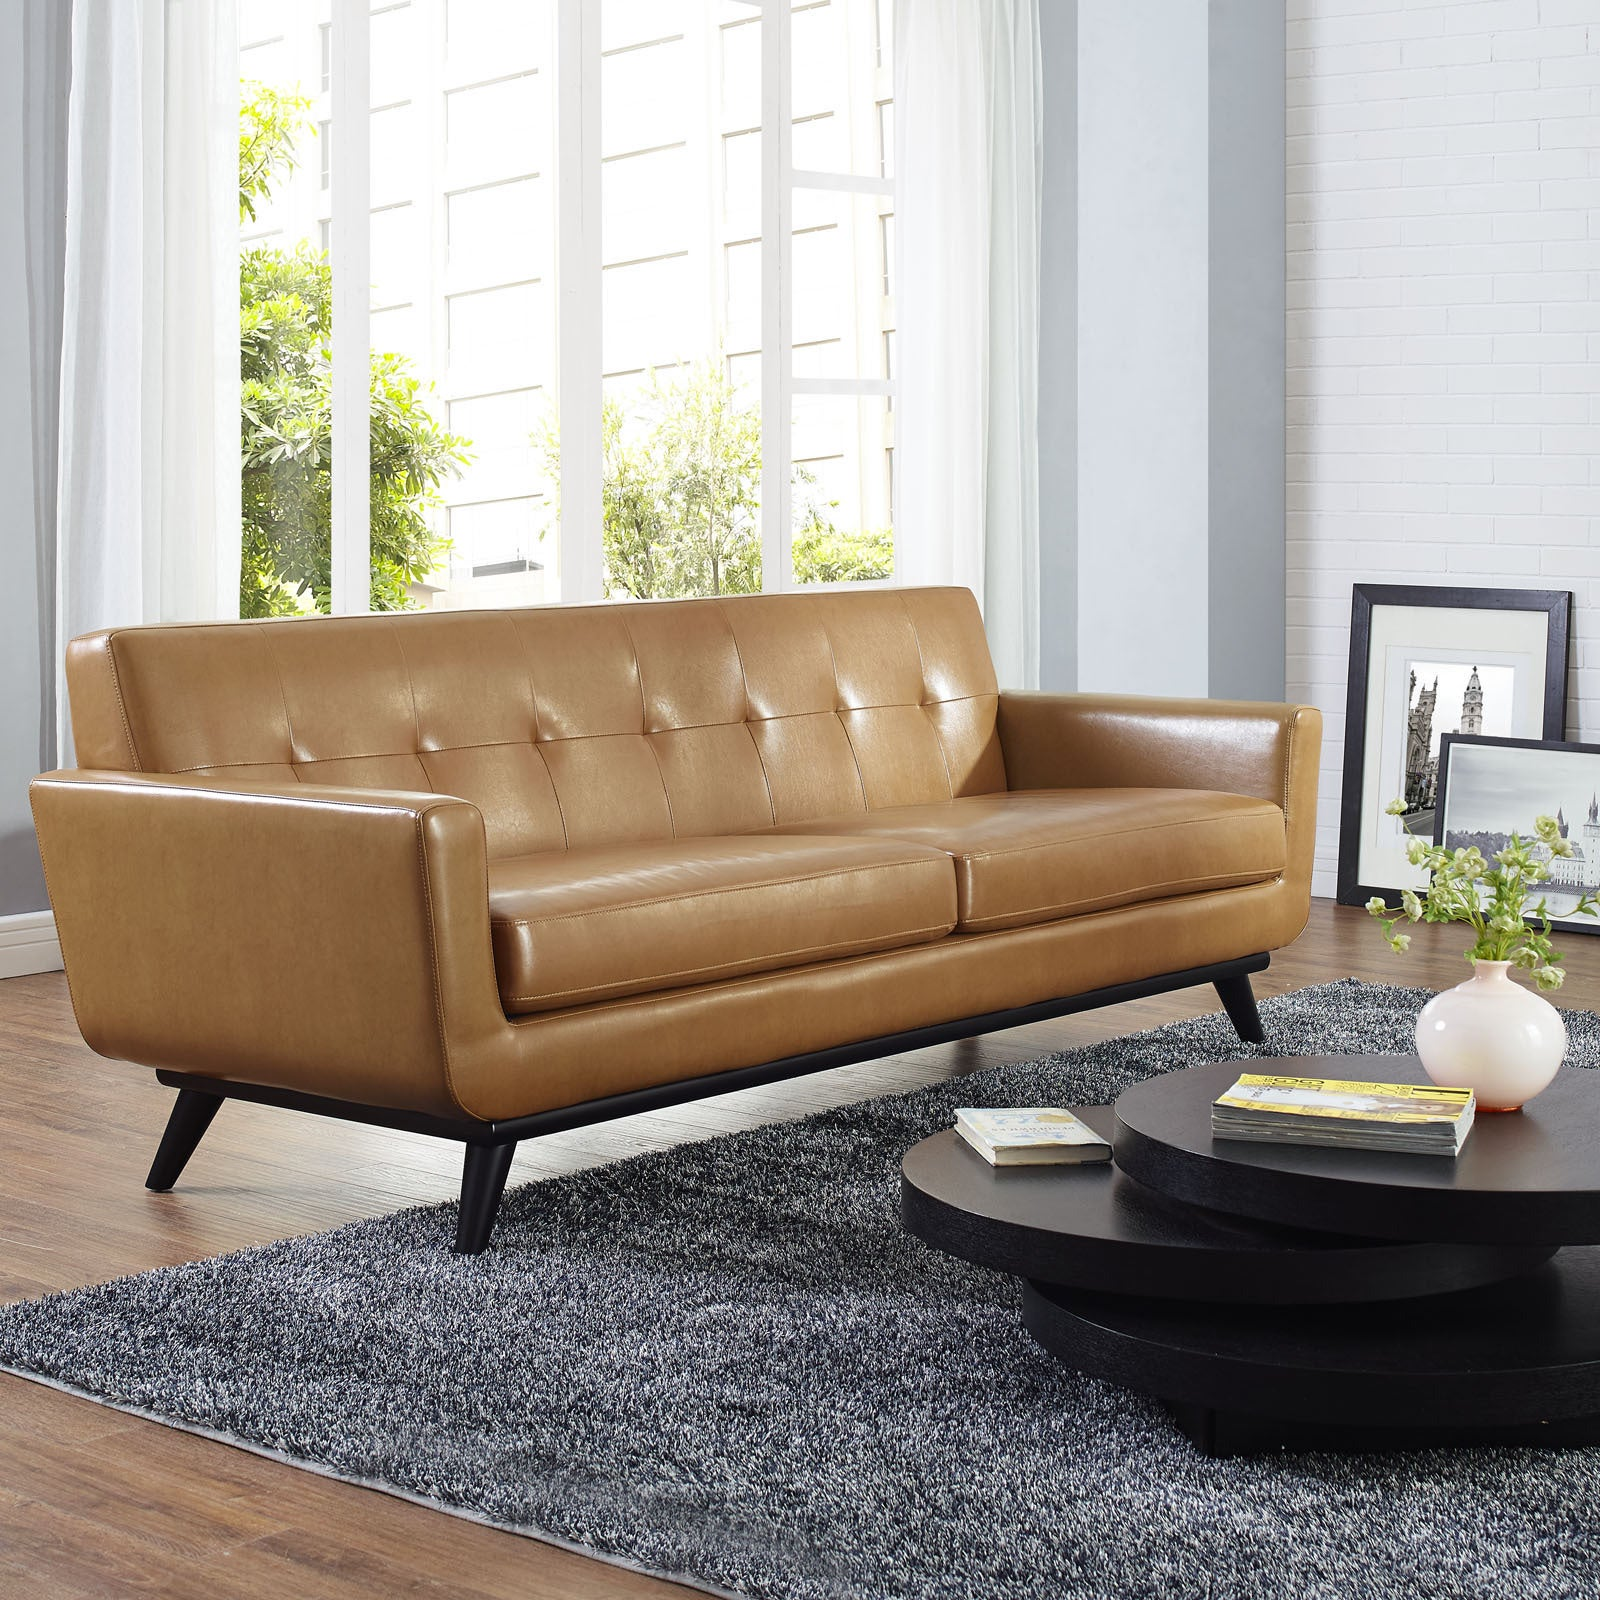 Engage Tan Leather Mid Century Sofa Free Shipping Today  ~ Tan Leather Mid Century Sofa